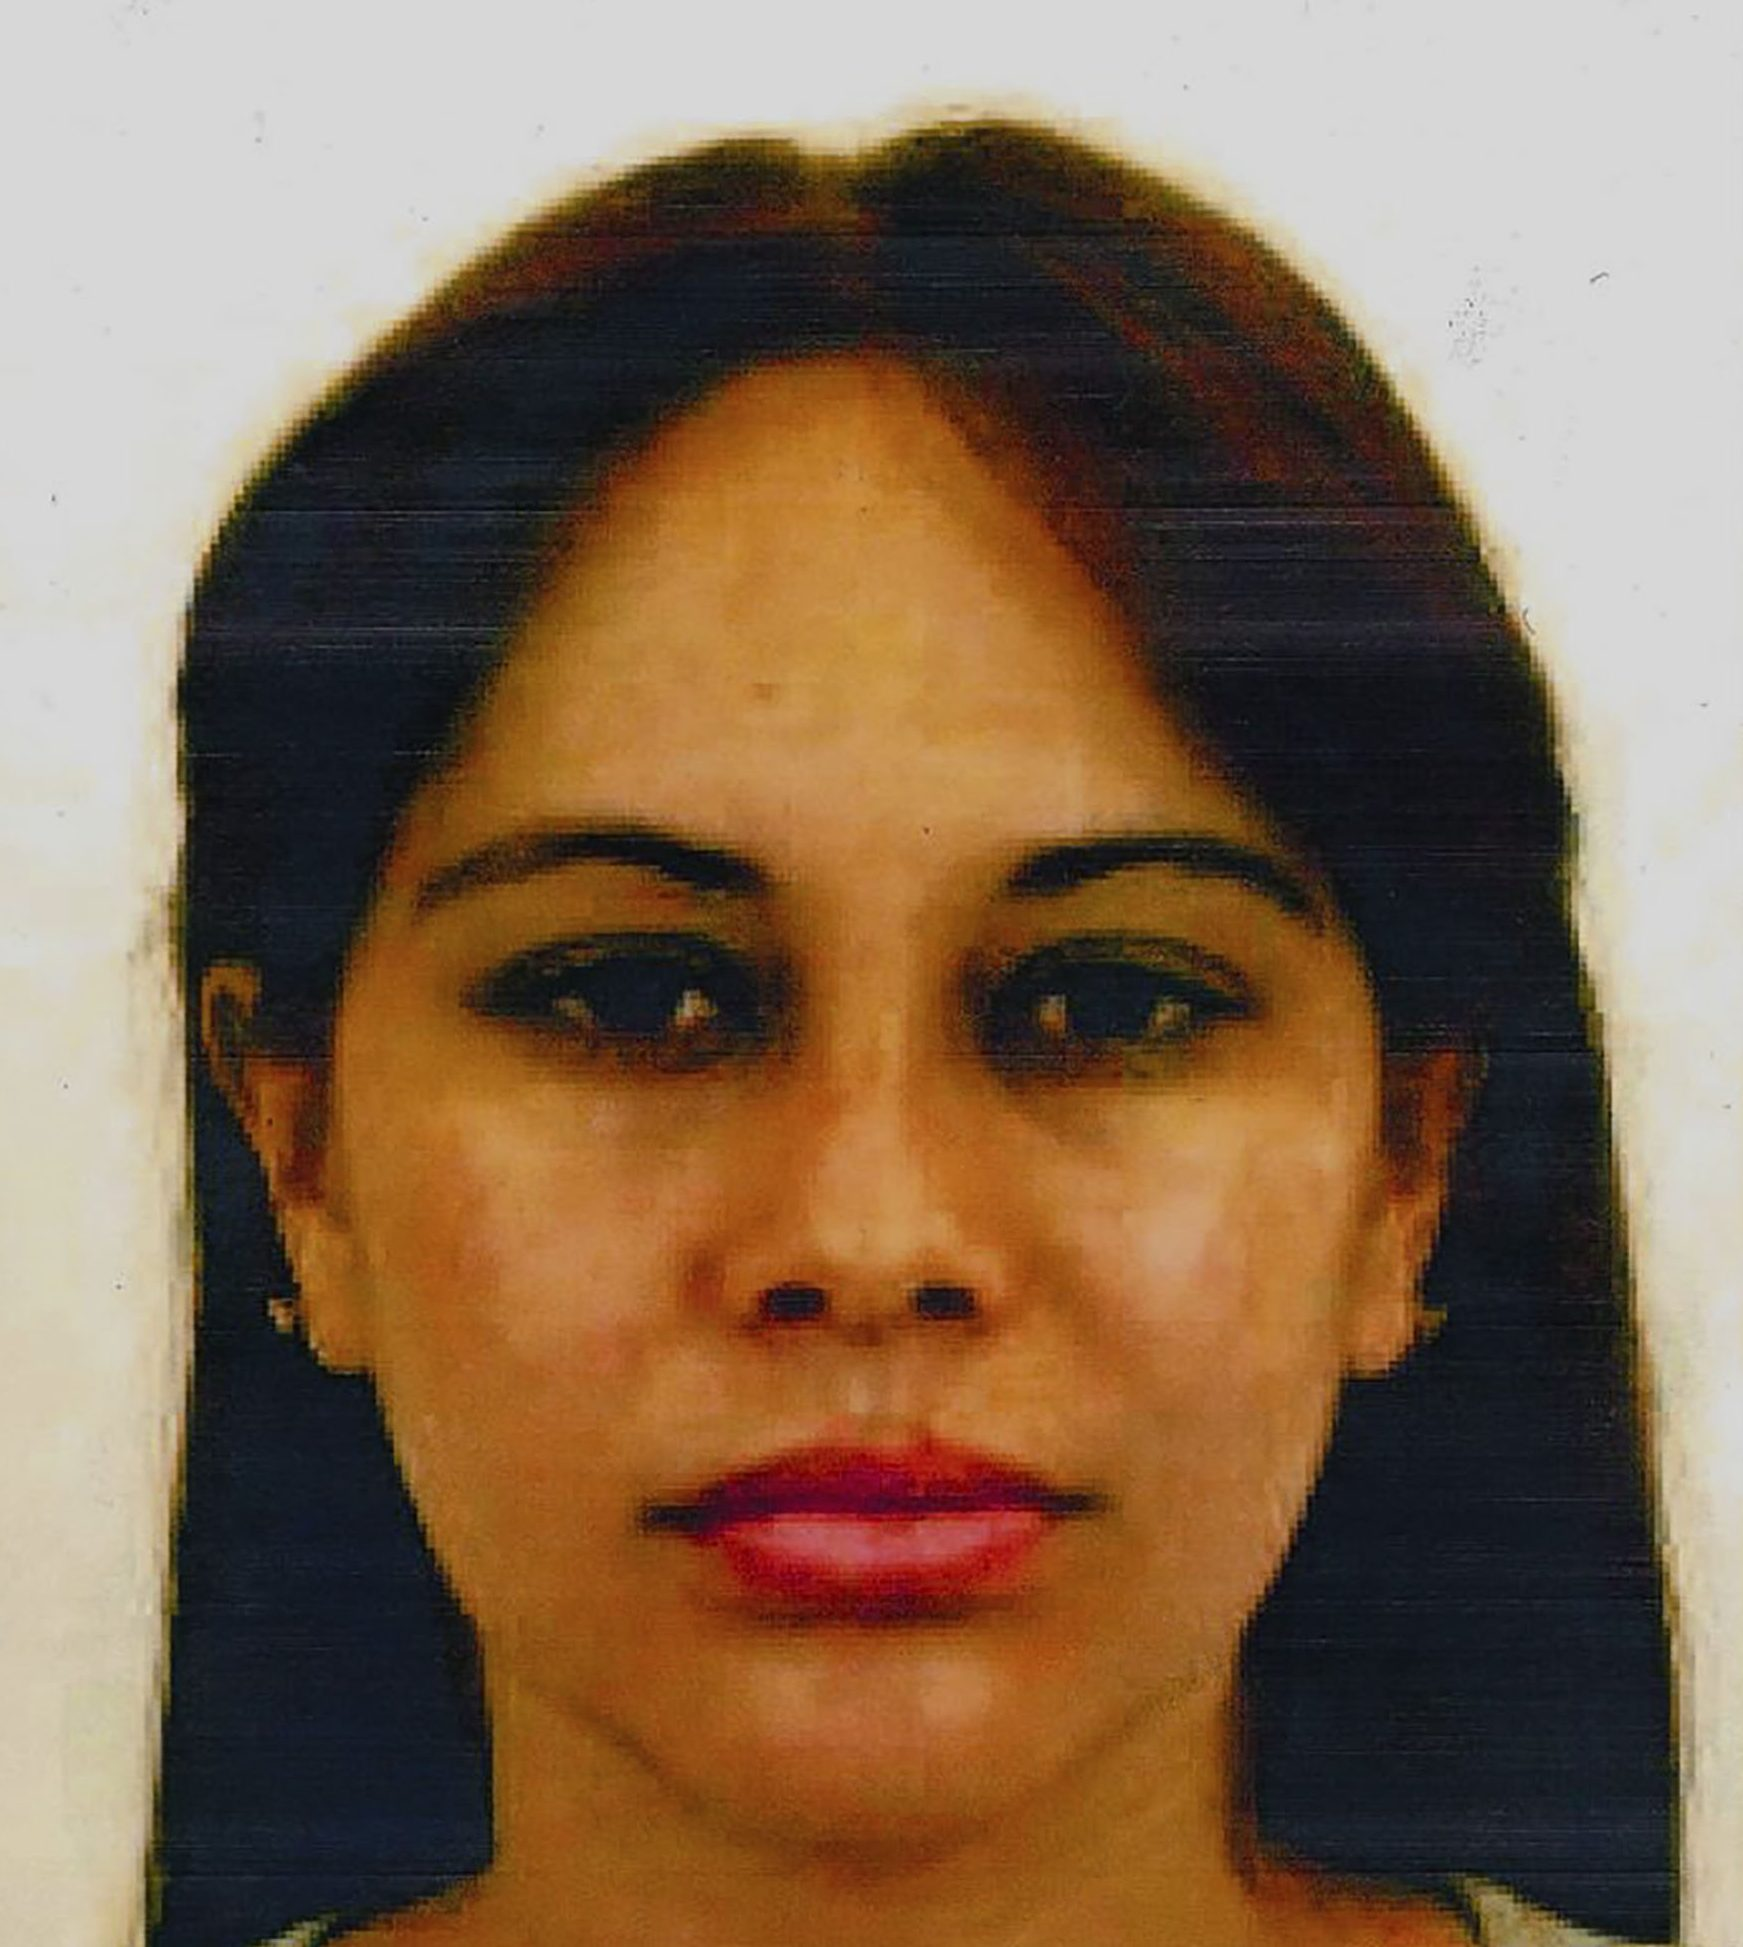 """This Eastern District of New York (EDNY)undated evidence handout photo,submitted as evidence, and obtained January 17, 2019 shows Lucero Guadalupe S??nchez L??pez, 29, a Mexican former lover of Joaquin Chapo Guzman, who took the stand on the trial of the Mexican druglord as a government witness on January 17, 2019. - A former mistress of Mexican crime boss Joaquin """"El Chapo"""" Guzman testified January 17, 2019 that the cartel leader lured her into a life as a drug trafficker, shifting hundreds of kilos of marijuana a time on planes. """"Until today I was confused because I thought it was a romantic relationship,"""" Lucero Guadalupe Sanchez Lopez, 29, told the New York City court where Guzman faces trafficking, firearms and money laundering charges.Sanchez, who was arrested in 2017 crossing from Mexico into San Diego and stands accused of conspiring to traffic cocaine, told the jury she met Guzman when she was 21. (Photo by HO / The Eastern District of New York / AFP) / RESTRICTED TO EDITORIAL USE - MANDATORY CREDIT """"AFP PHOTO / EDNY/HANDOUT"""" - NO MARKETING NO ADVERTISING CAMPAIGNS - DISTRIBUTED AS A SERVICE TO CLIENTSHO/AFP/Getty Images"""